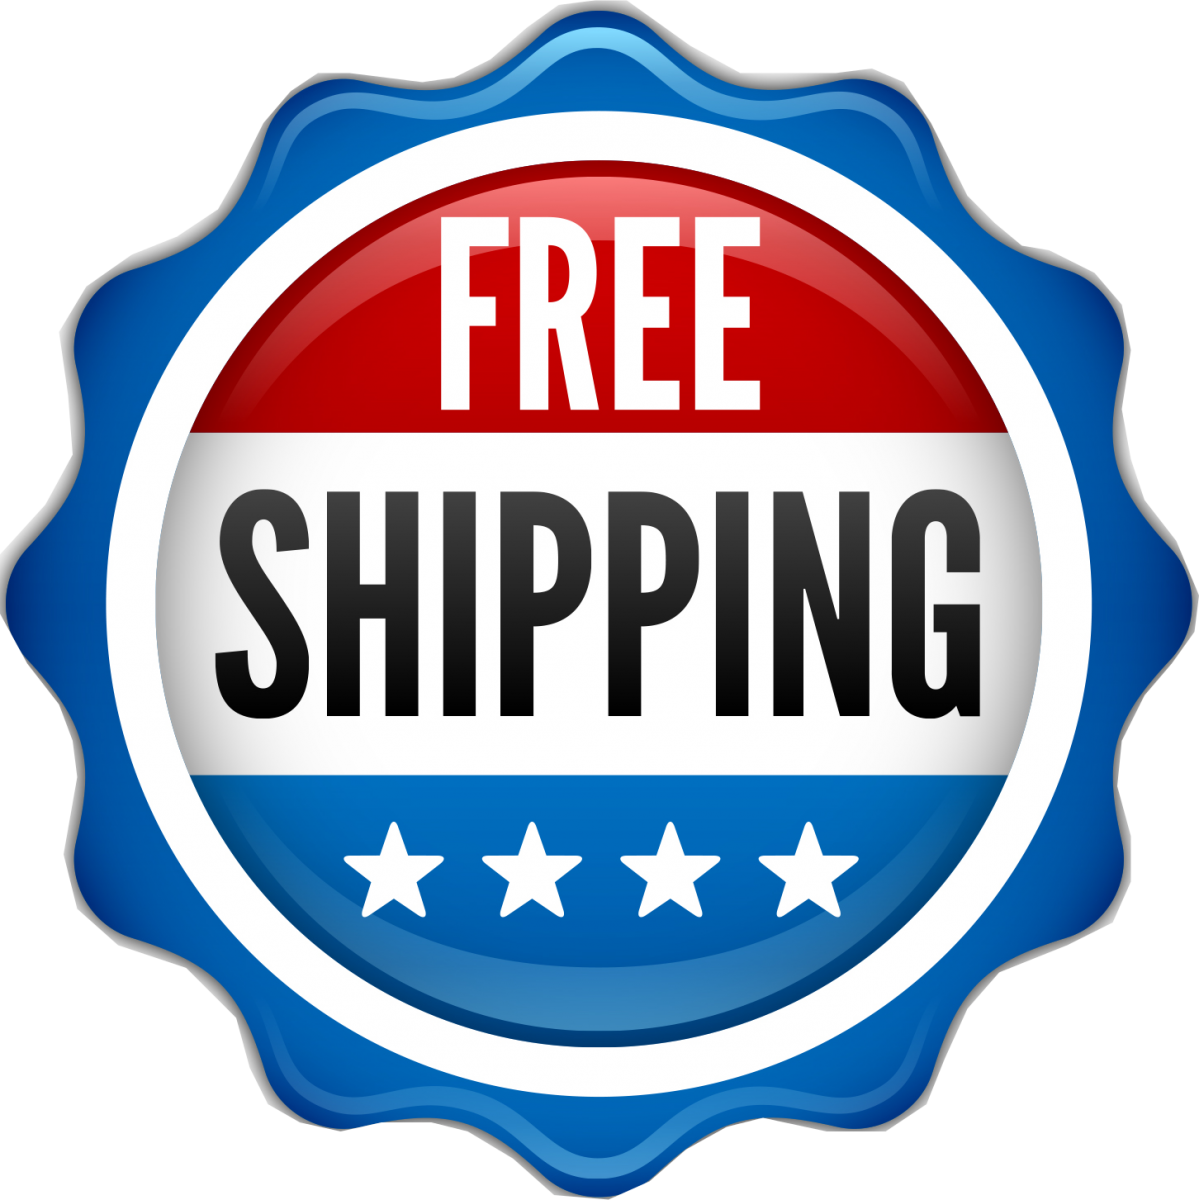 free-shipping-circle-icon-transparent-background-4.png